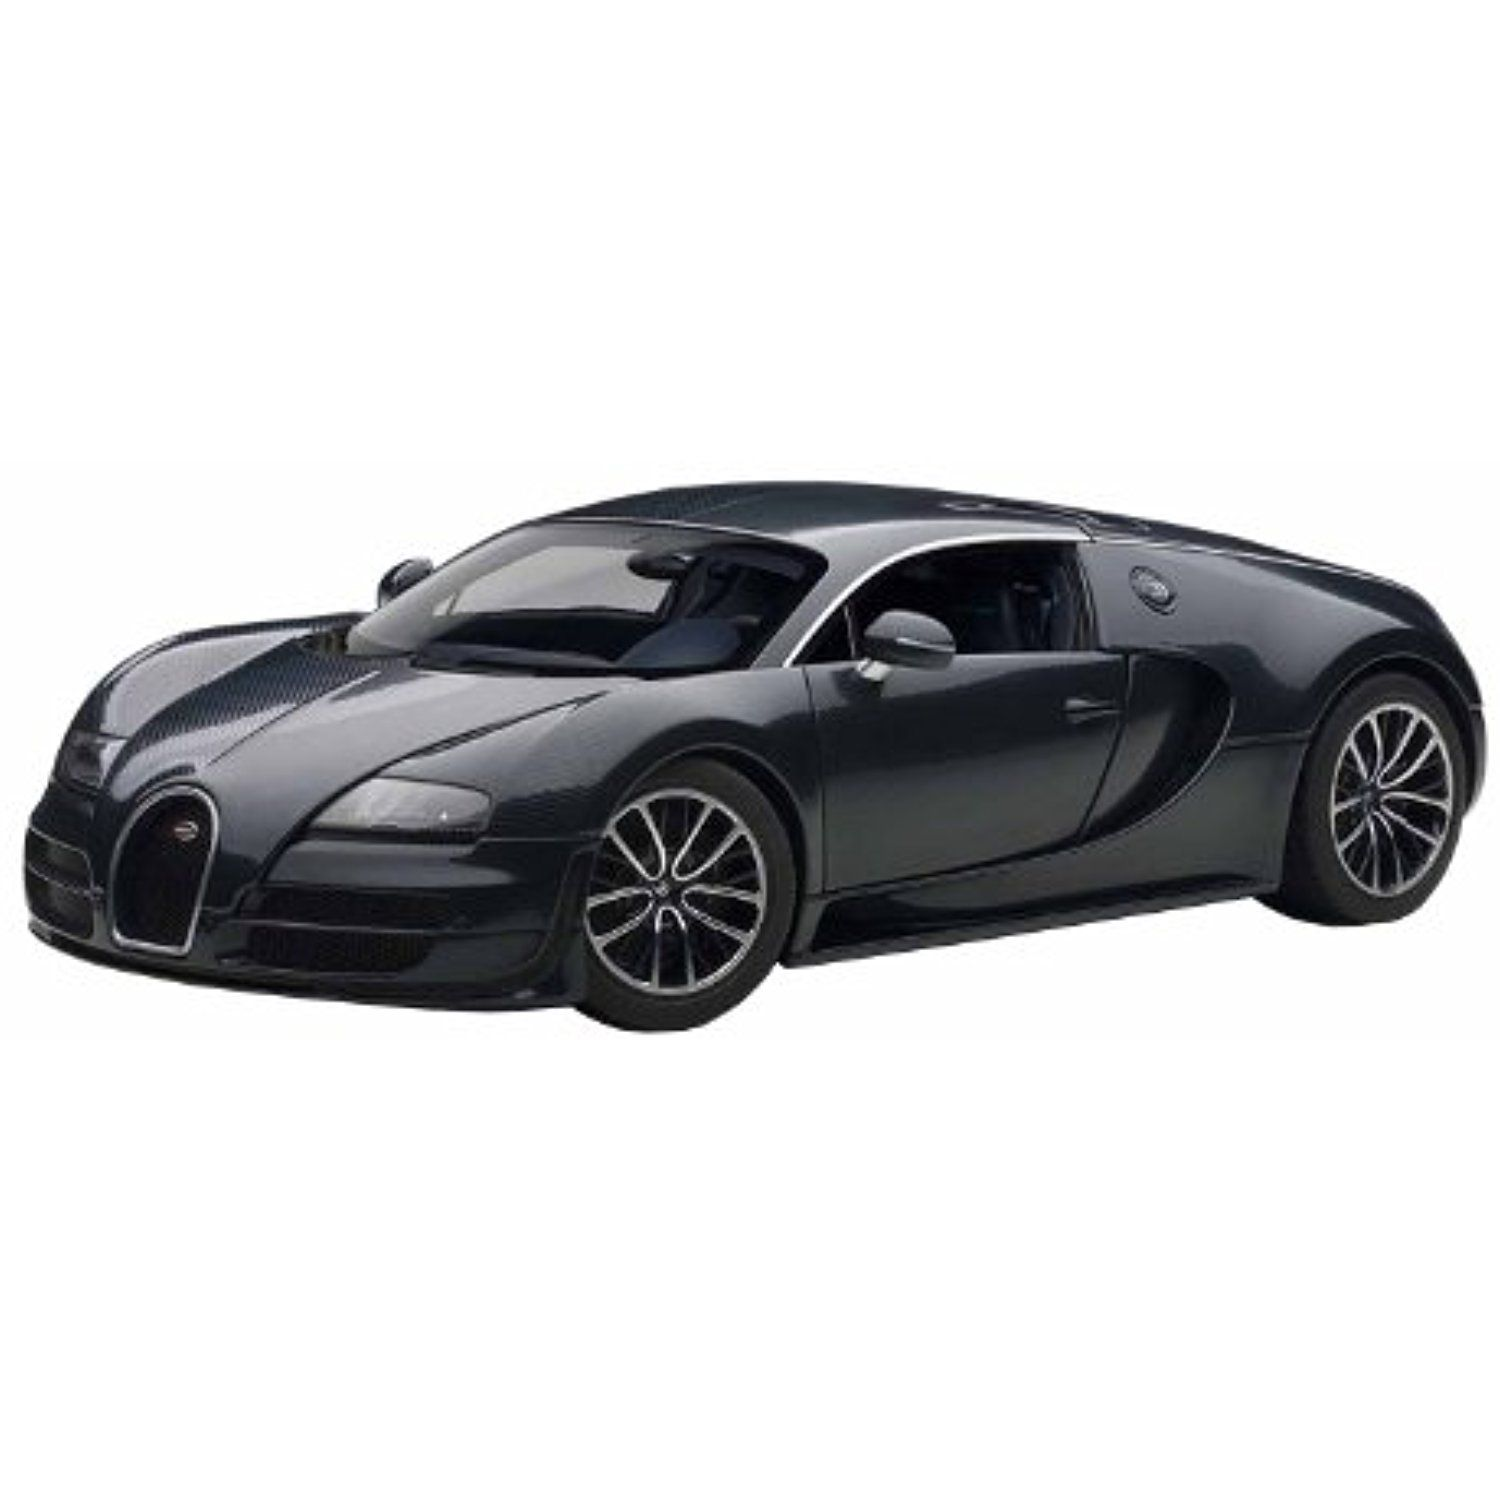 Blue Bugatti Veyron Super Sport: Pin On Hobbies